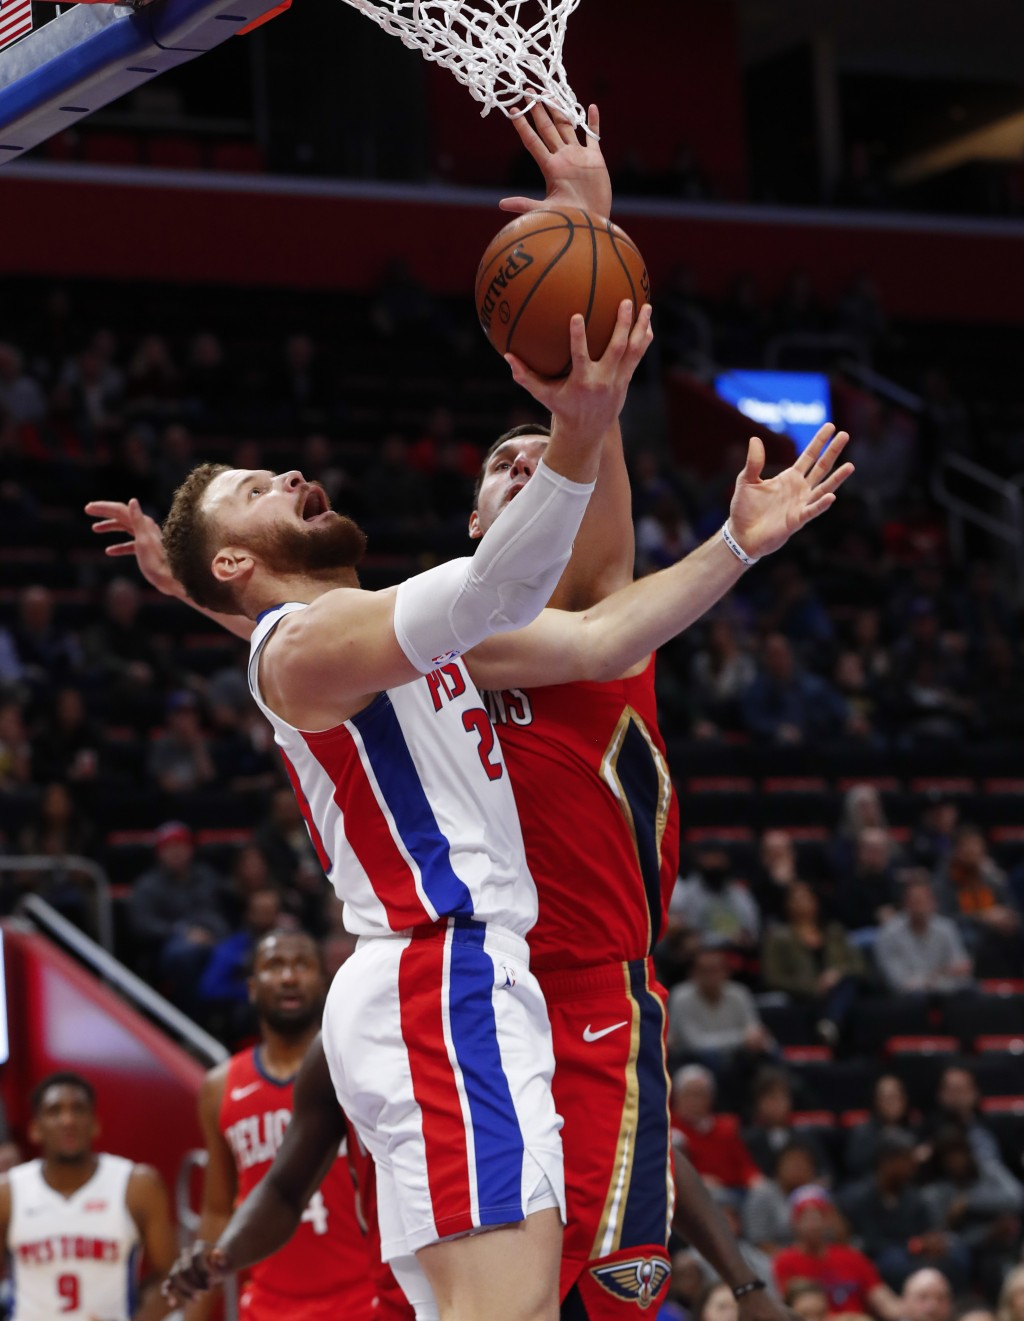 Detroit Pistons forward Blake Griffin (23) drives on New Orleans Pelicans forward Nikola Mirotic (3) in the first half of an NBA basketball game in De